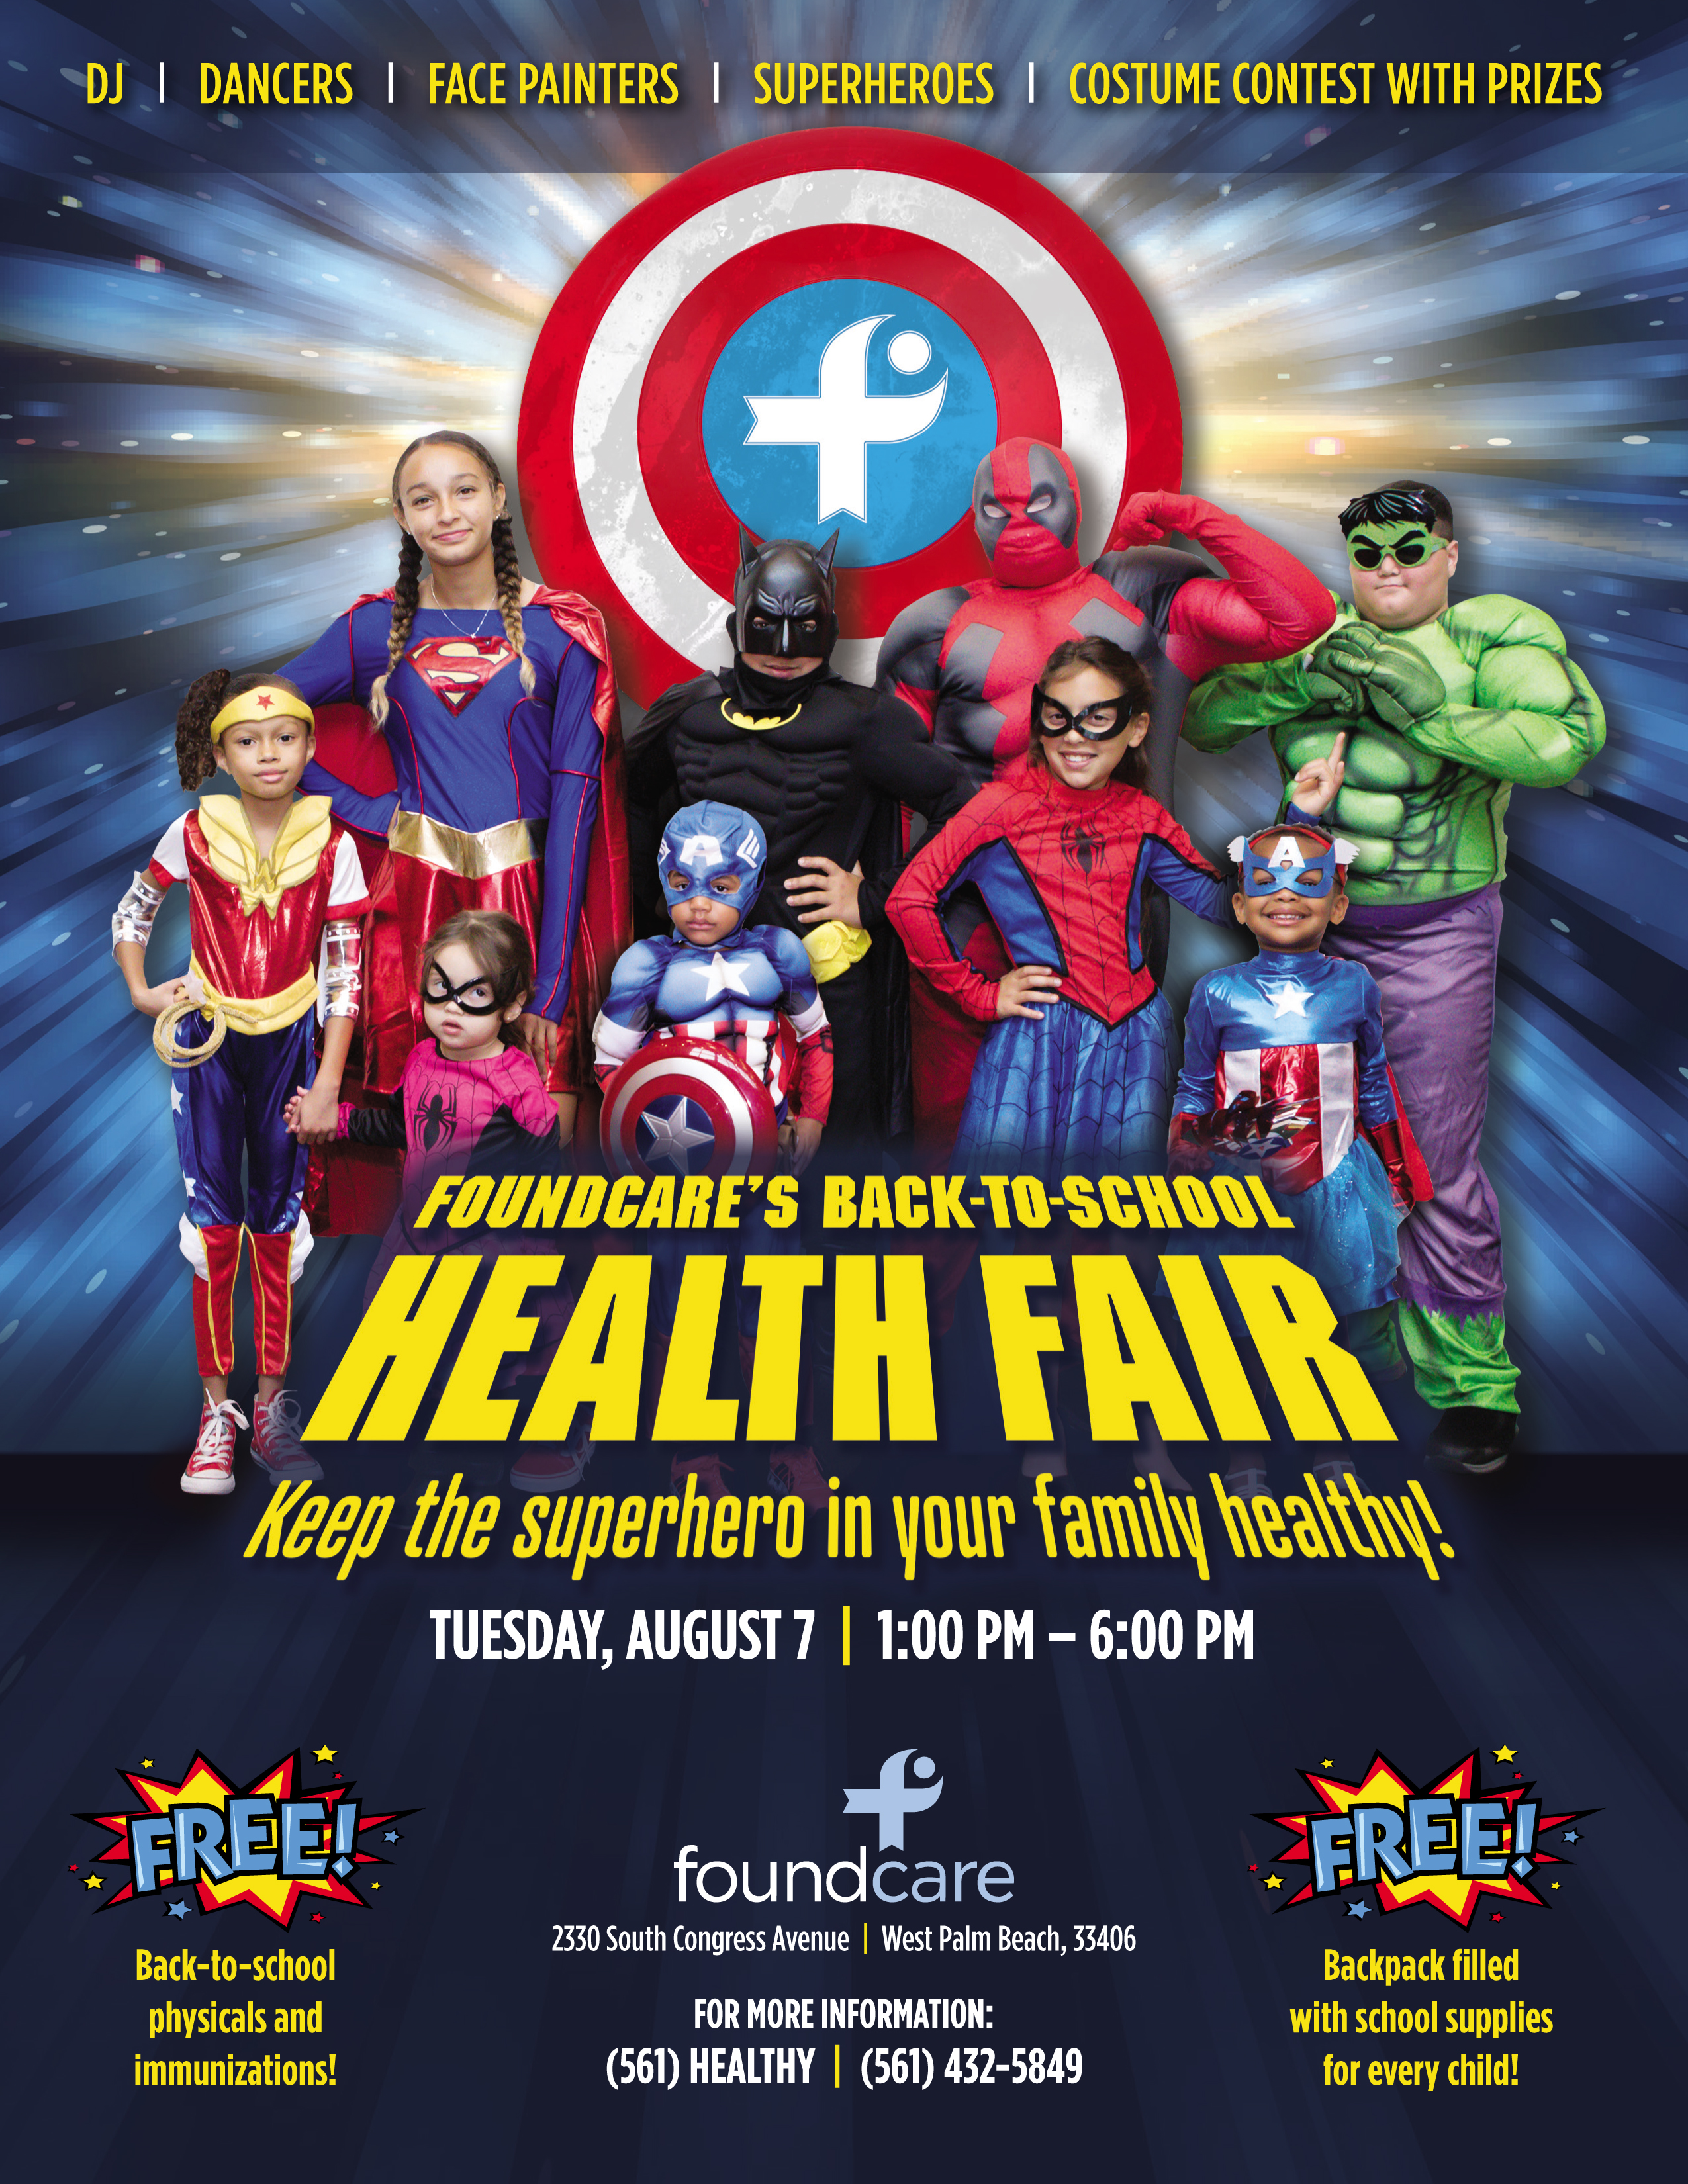 FoundCare's Back-To-School Health Fair